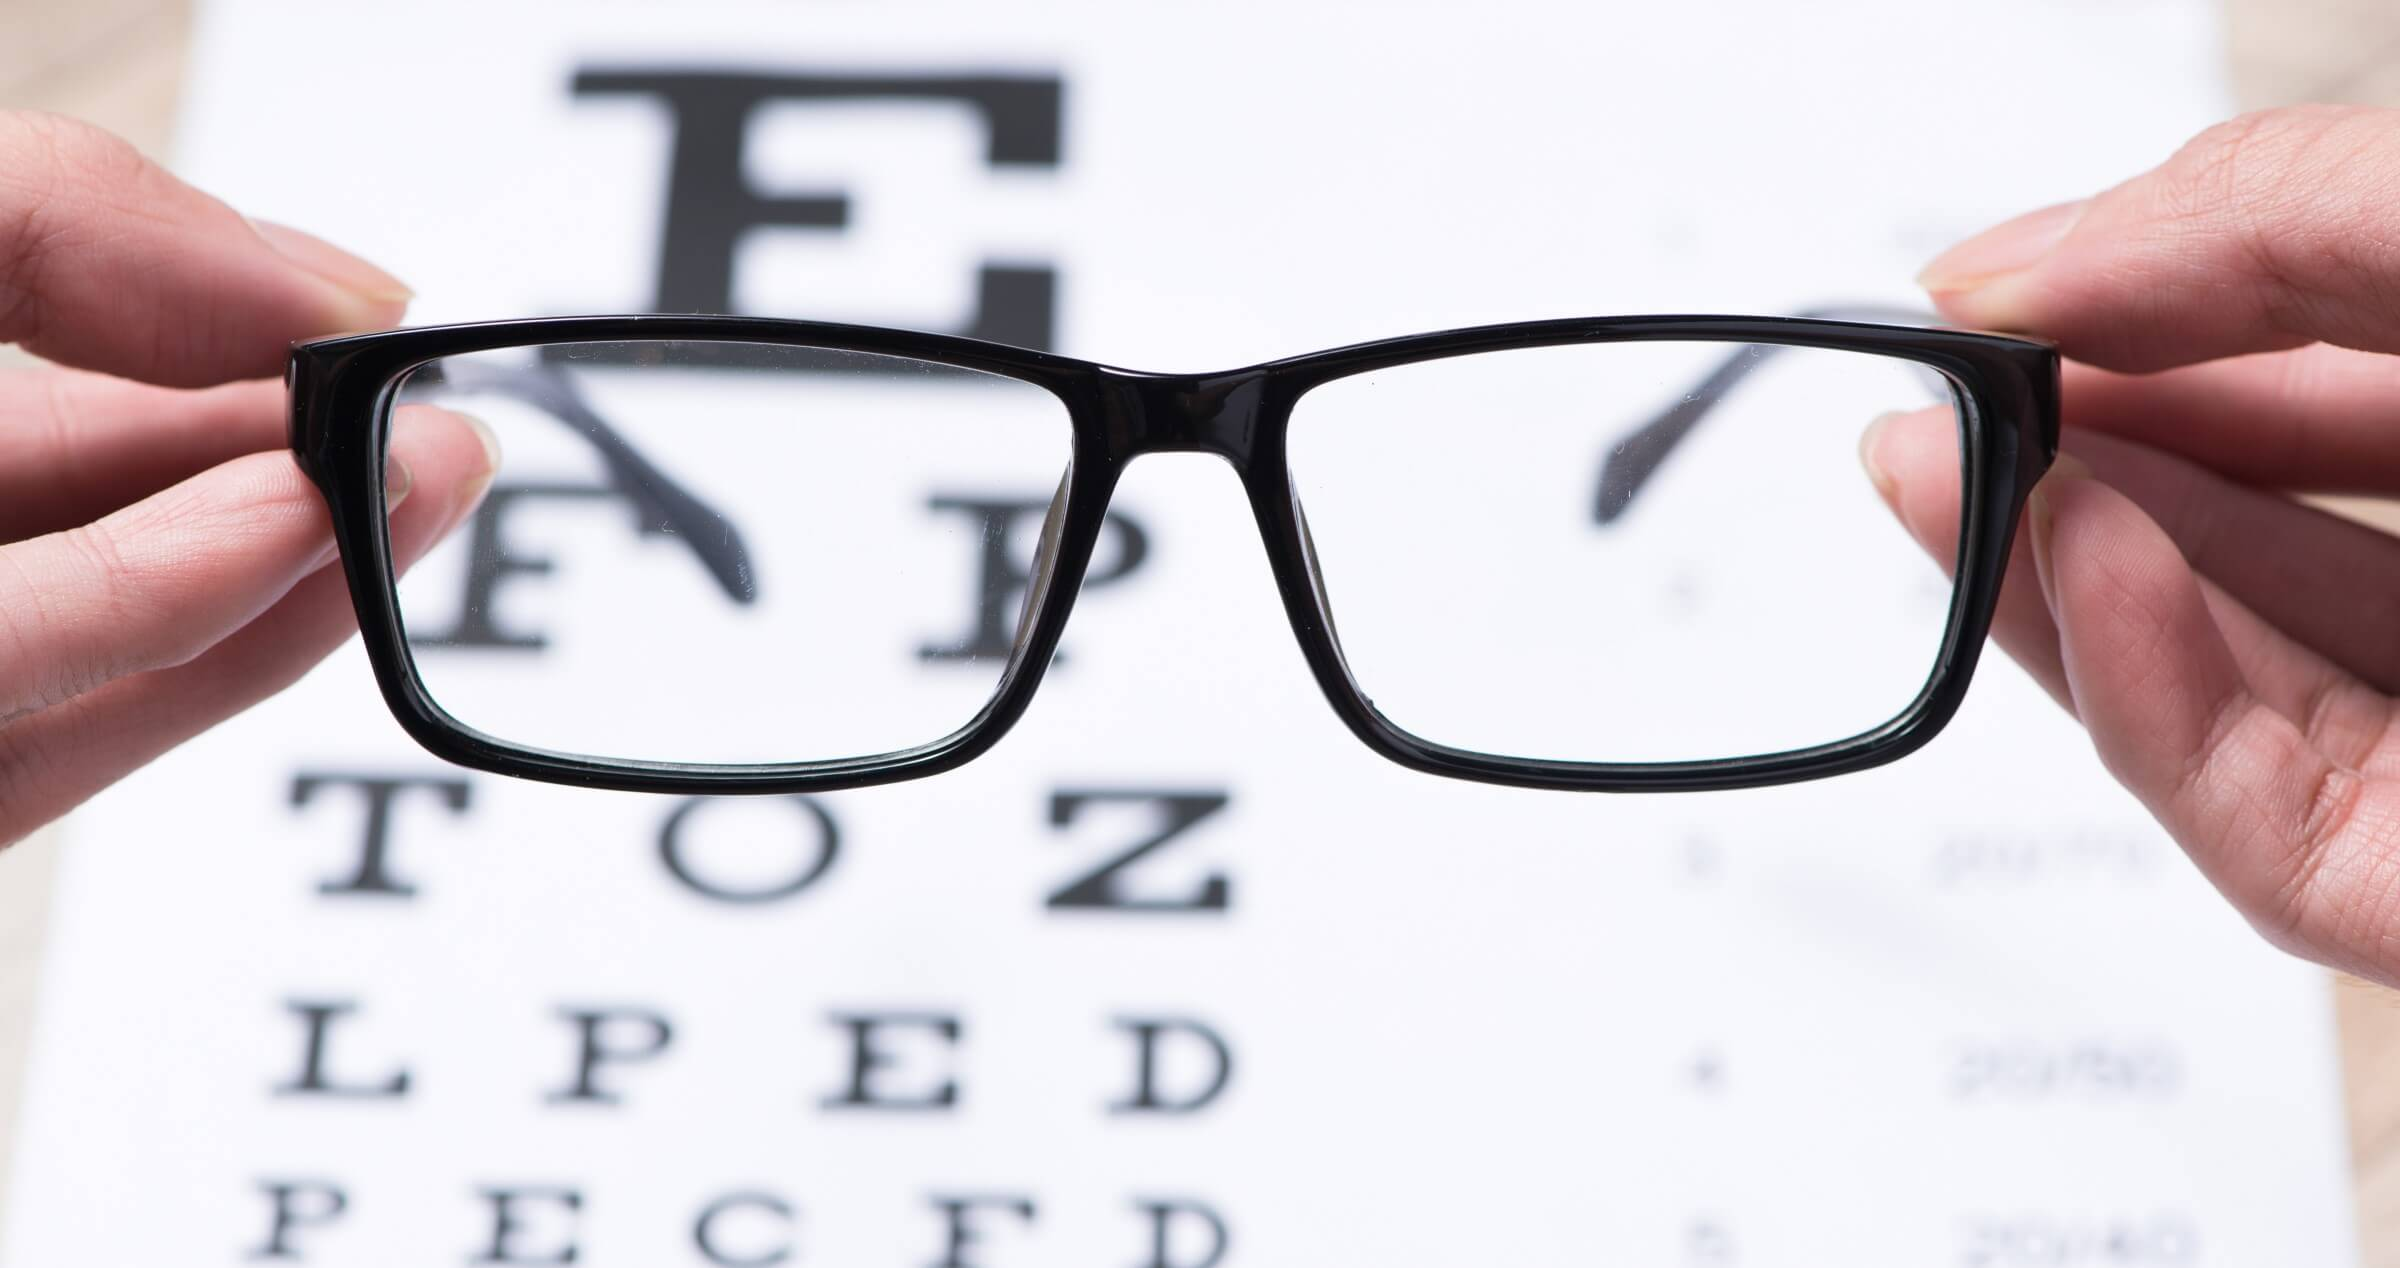 Visual acuity chart with different sized letters